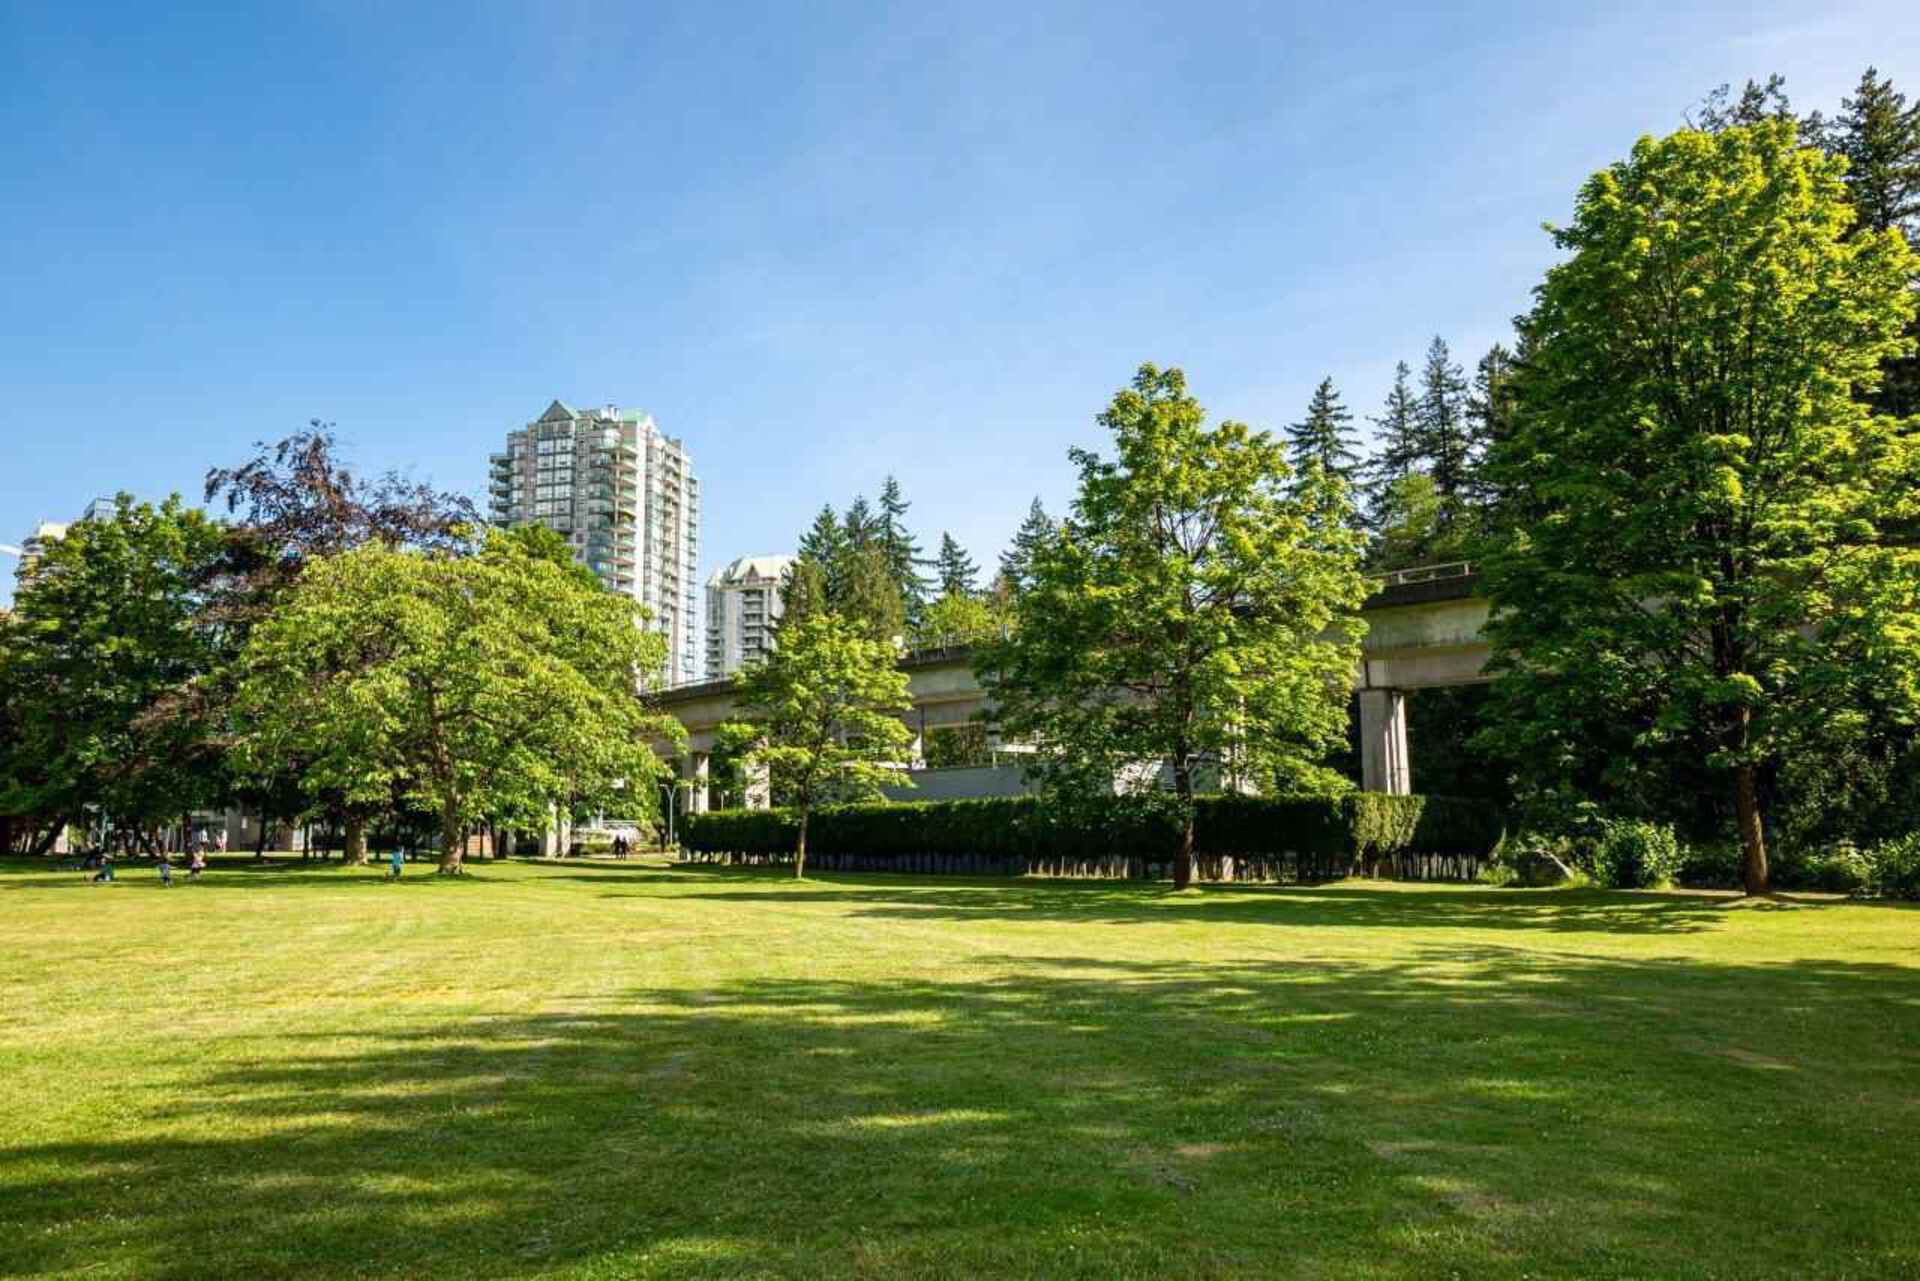 5932-patterson-avenue-metrotown-burnaby-south-22 at 501 - 5932 Patterson Avenue, Metrotown, Burnaby South